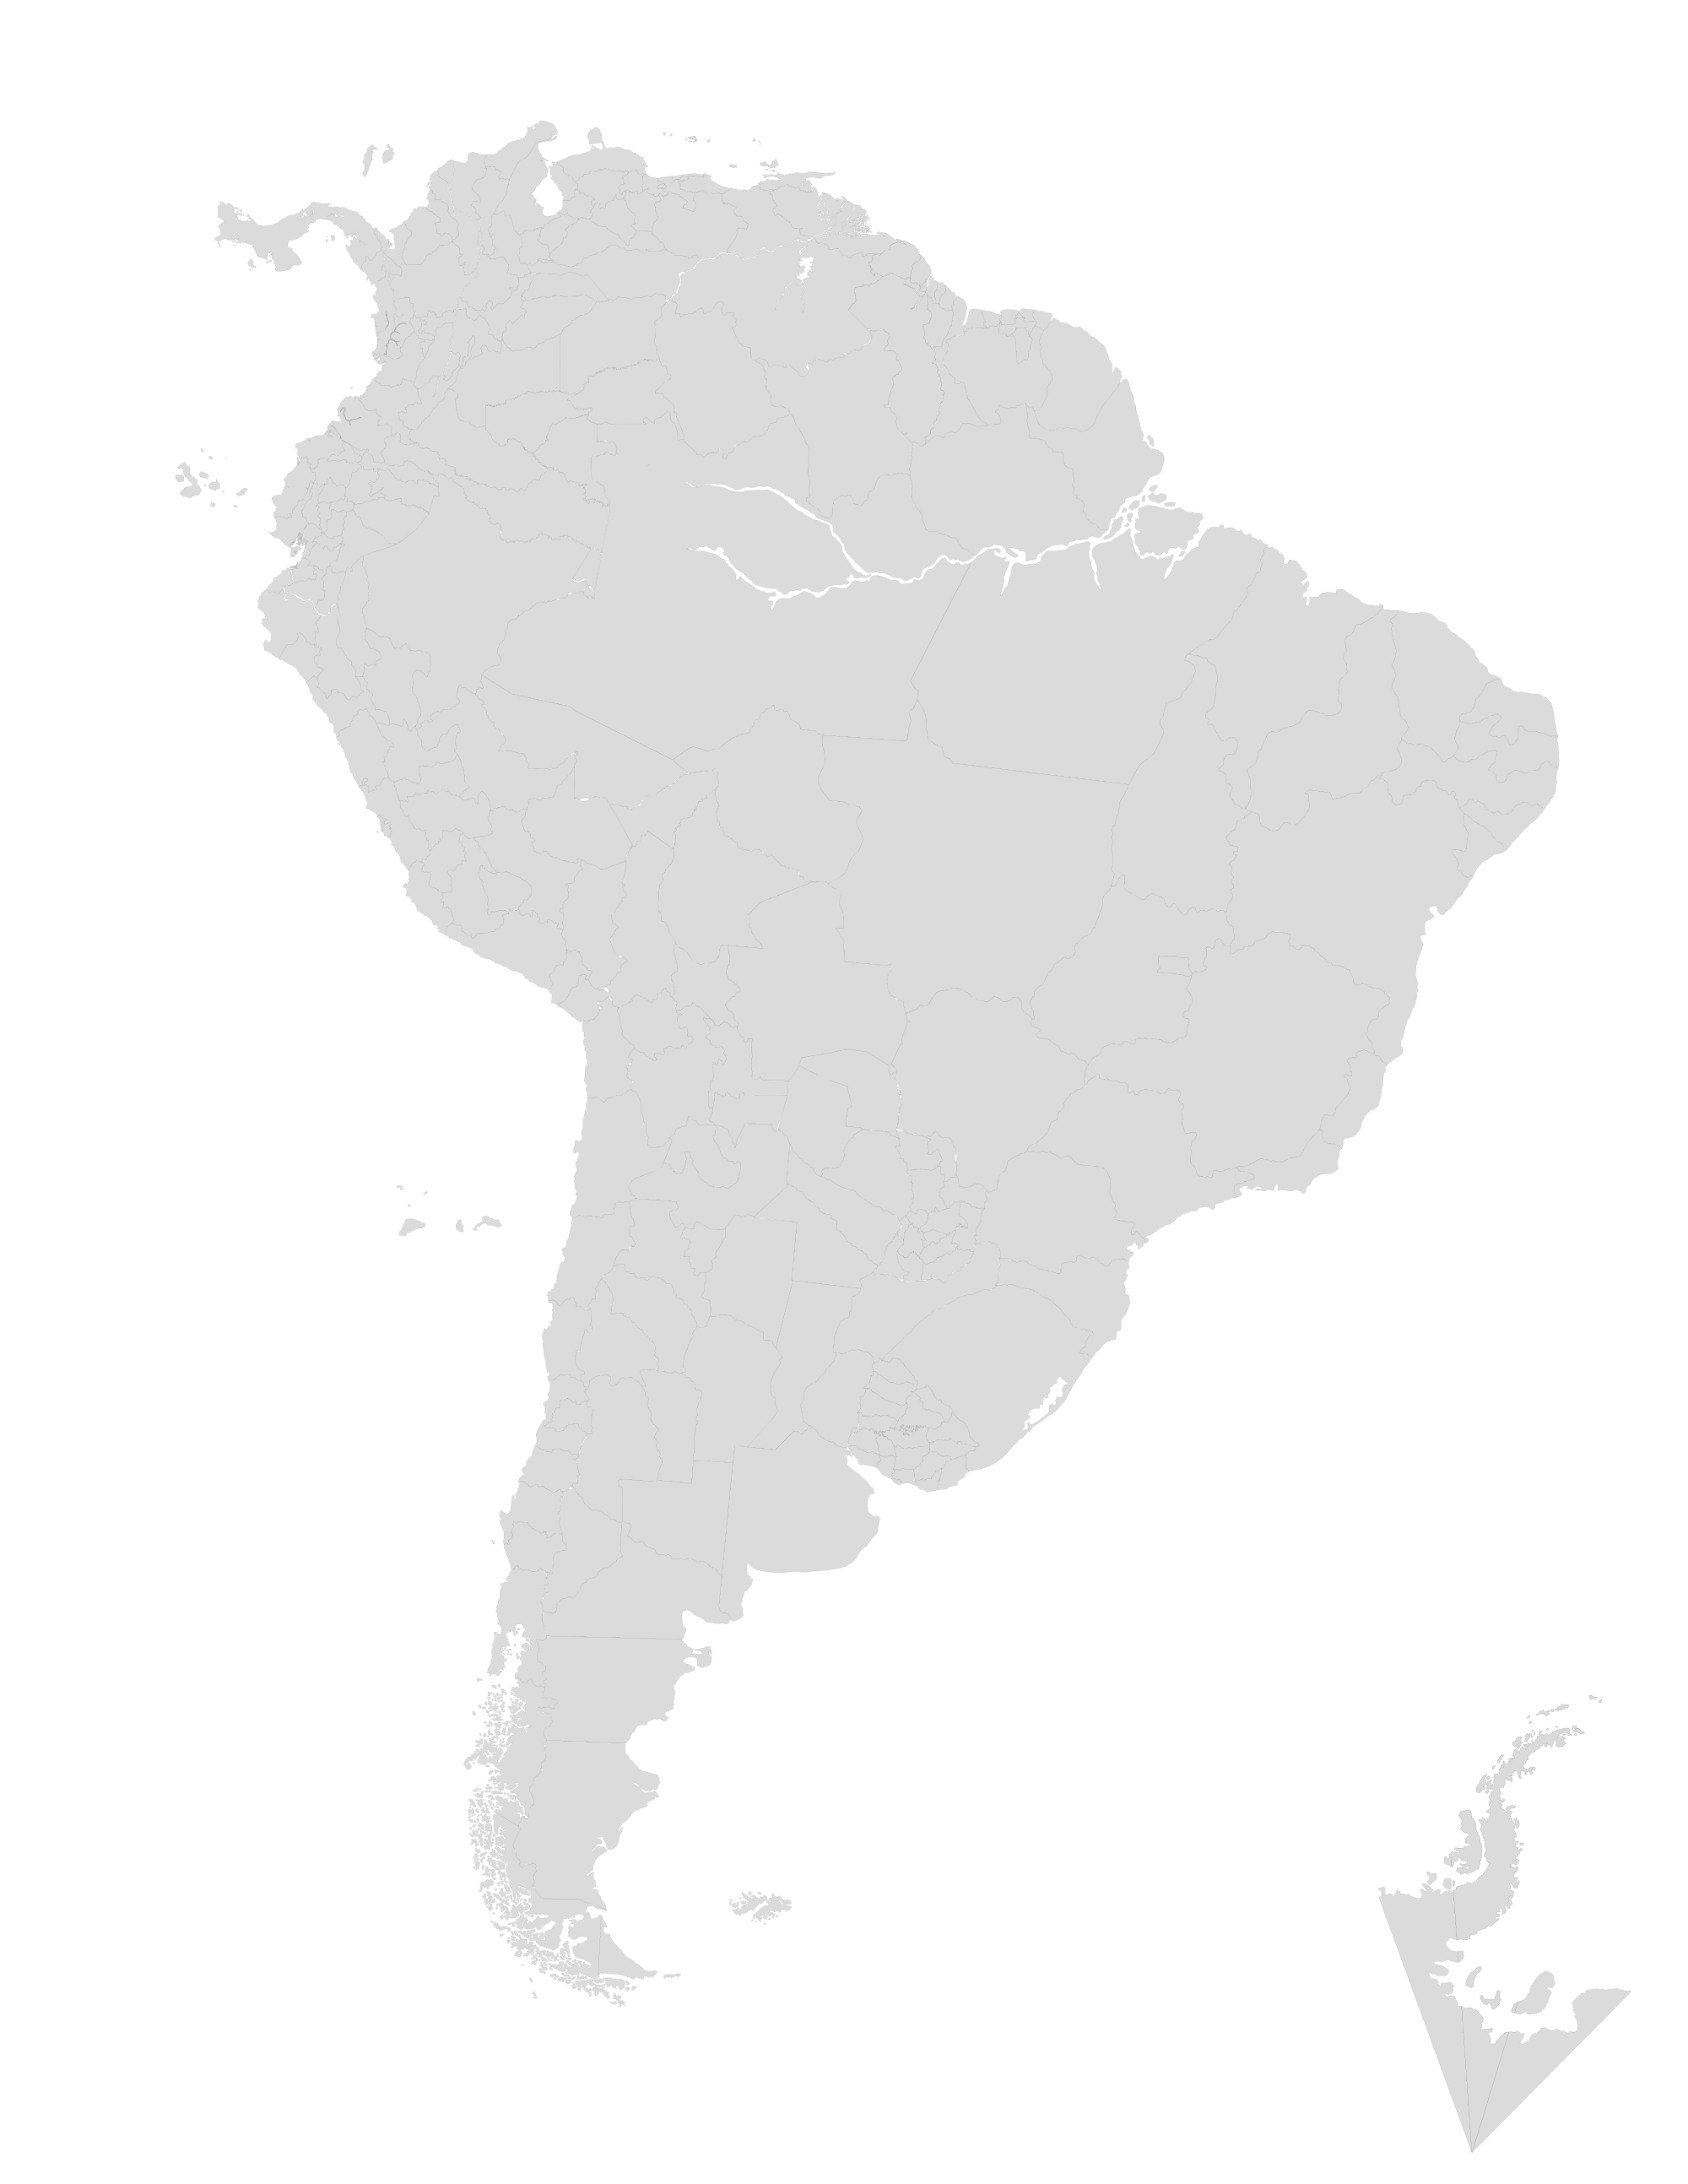 PNG South America Transparent South America.PNG Images.